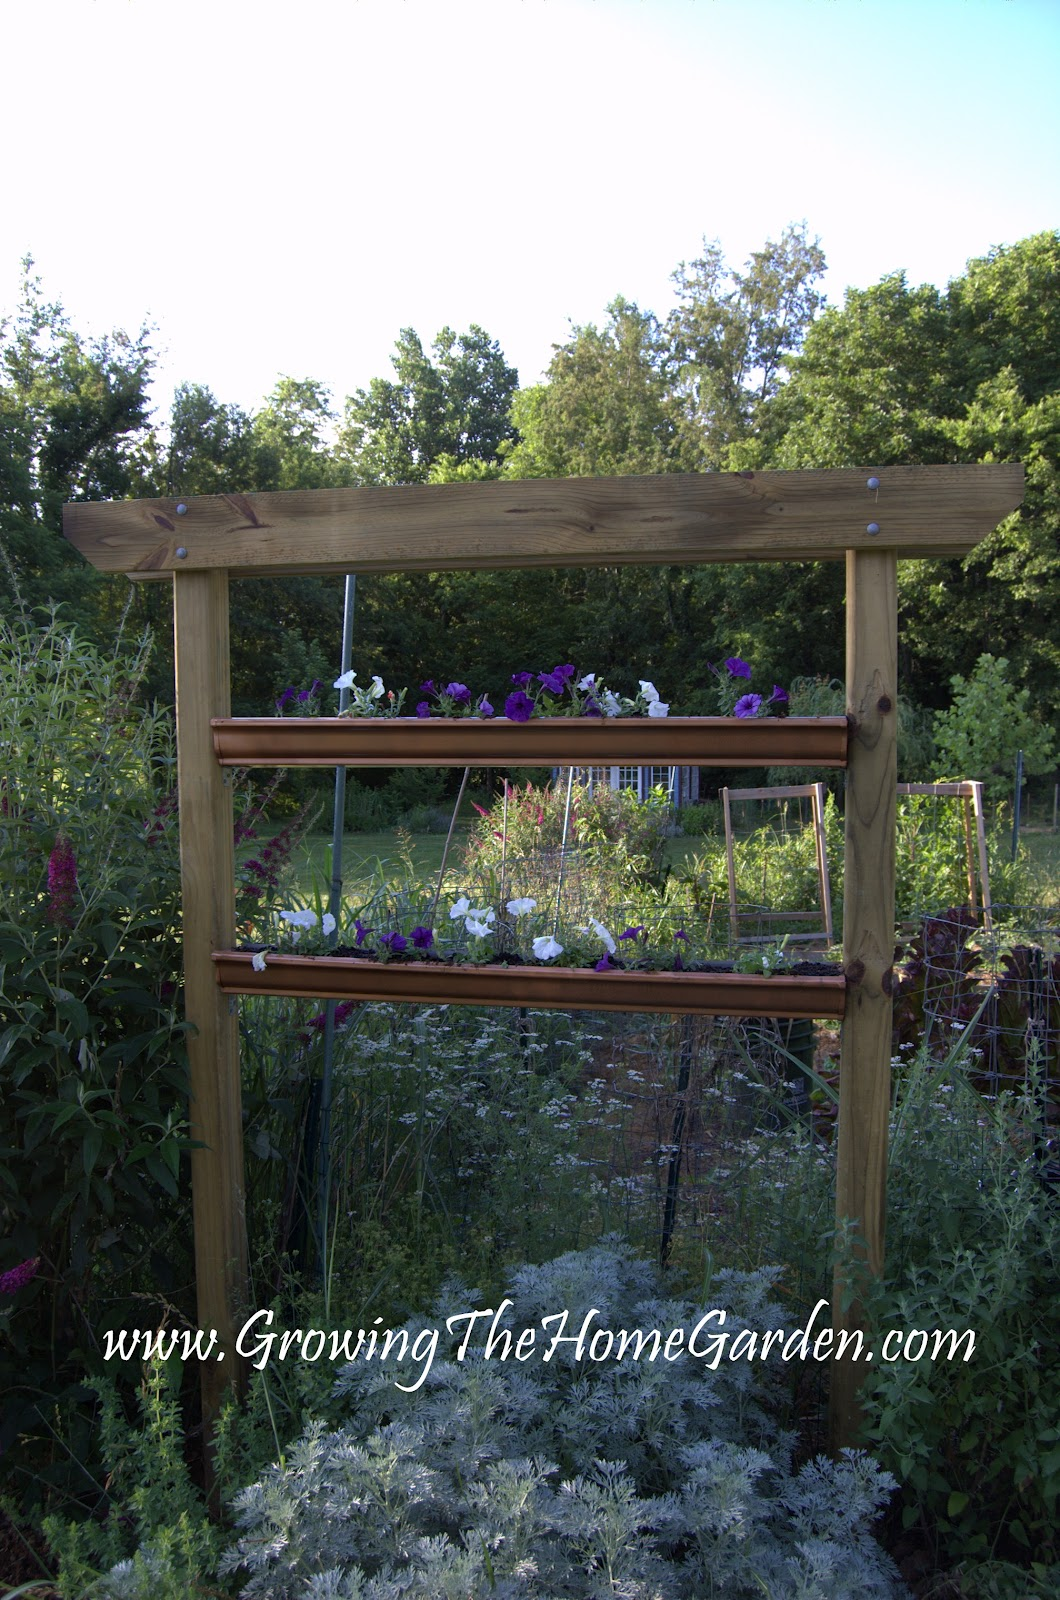 Growing The Home Garden: Gardening in the Home Landscape: May 2012